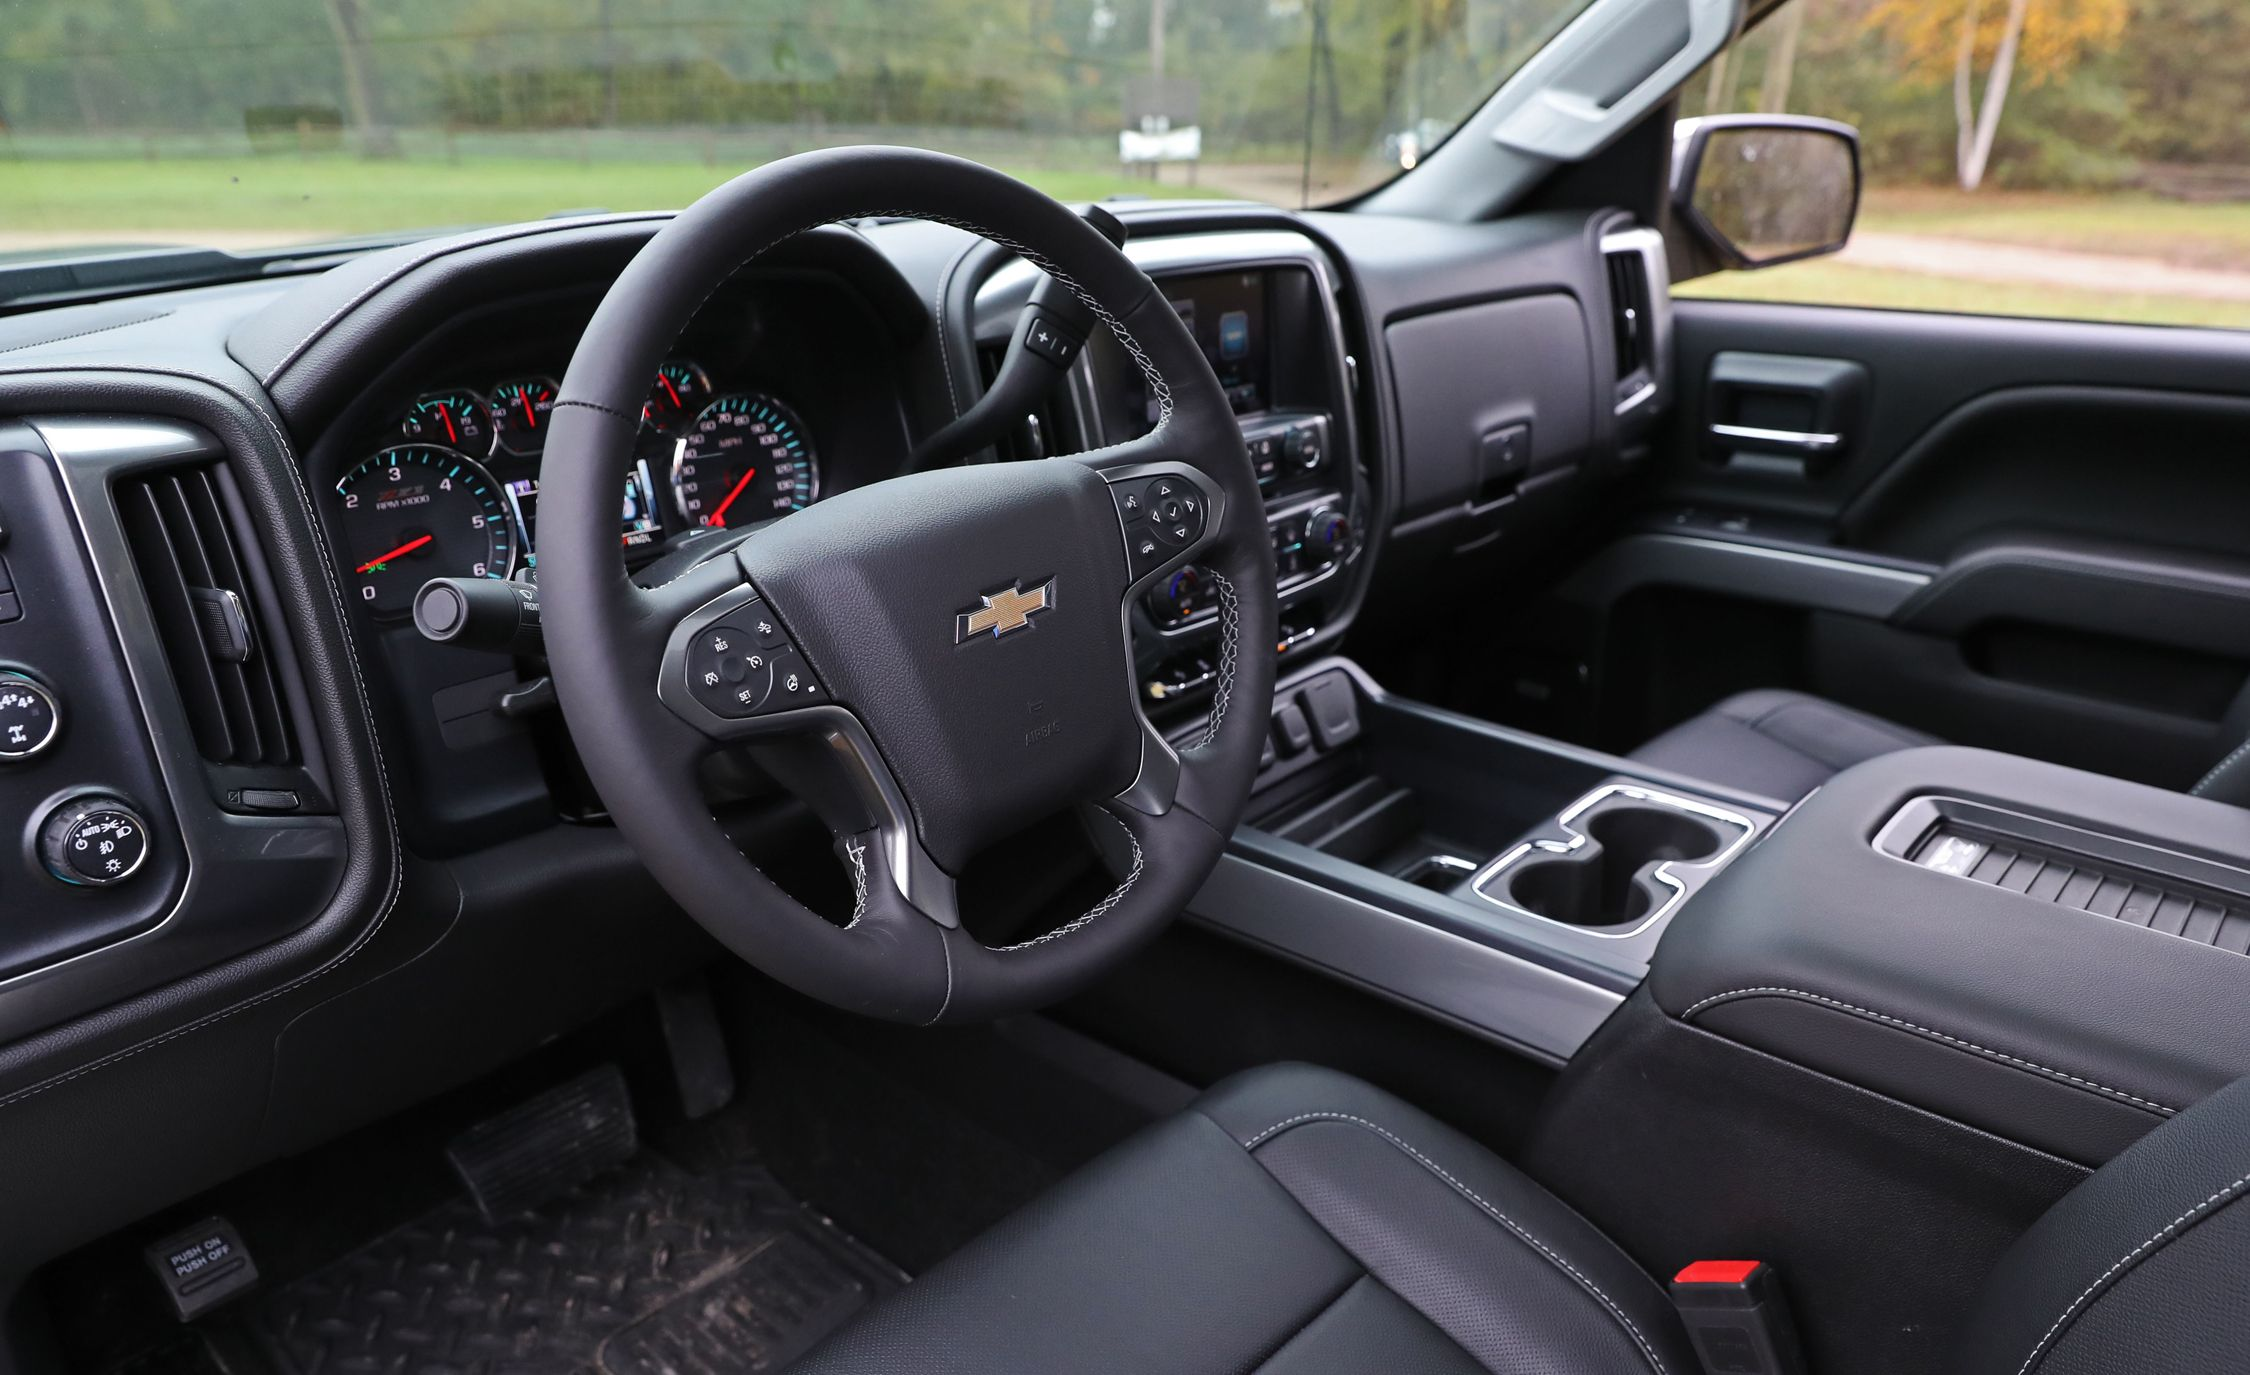 2017 Chevrolet Silverado | Interior Review | Car and Driver